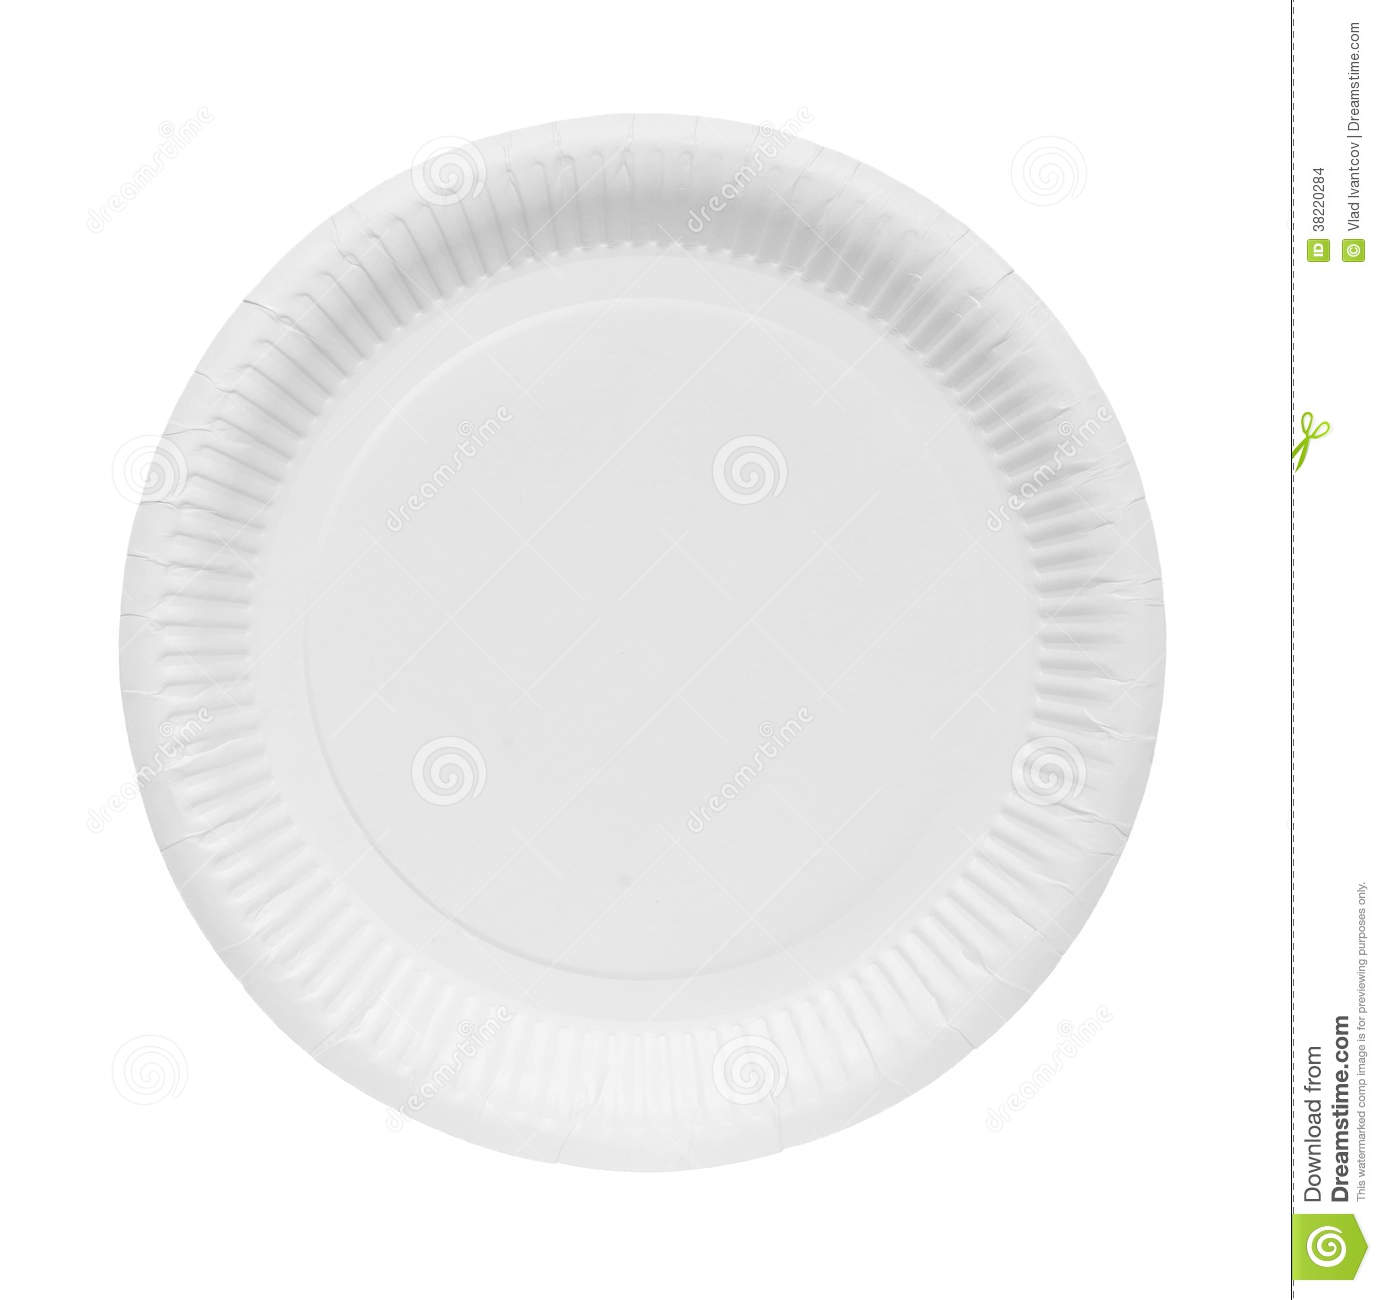 Paper plate  sc 1 st  Dreamstime.com & Paper plate stock photo. Image of carton circle isolated - 38220284